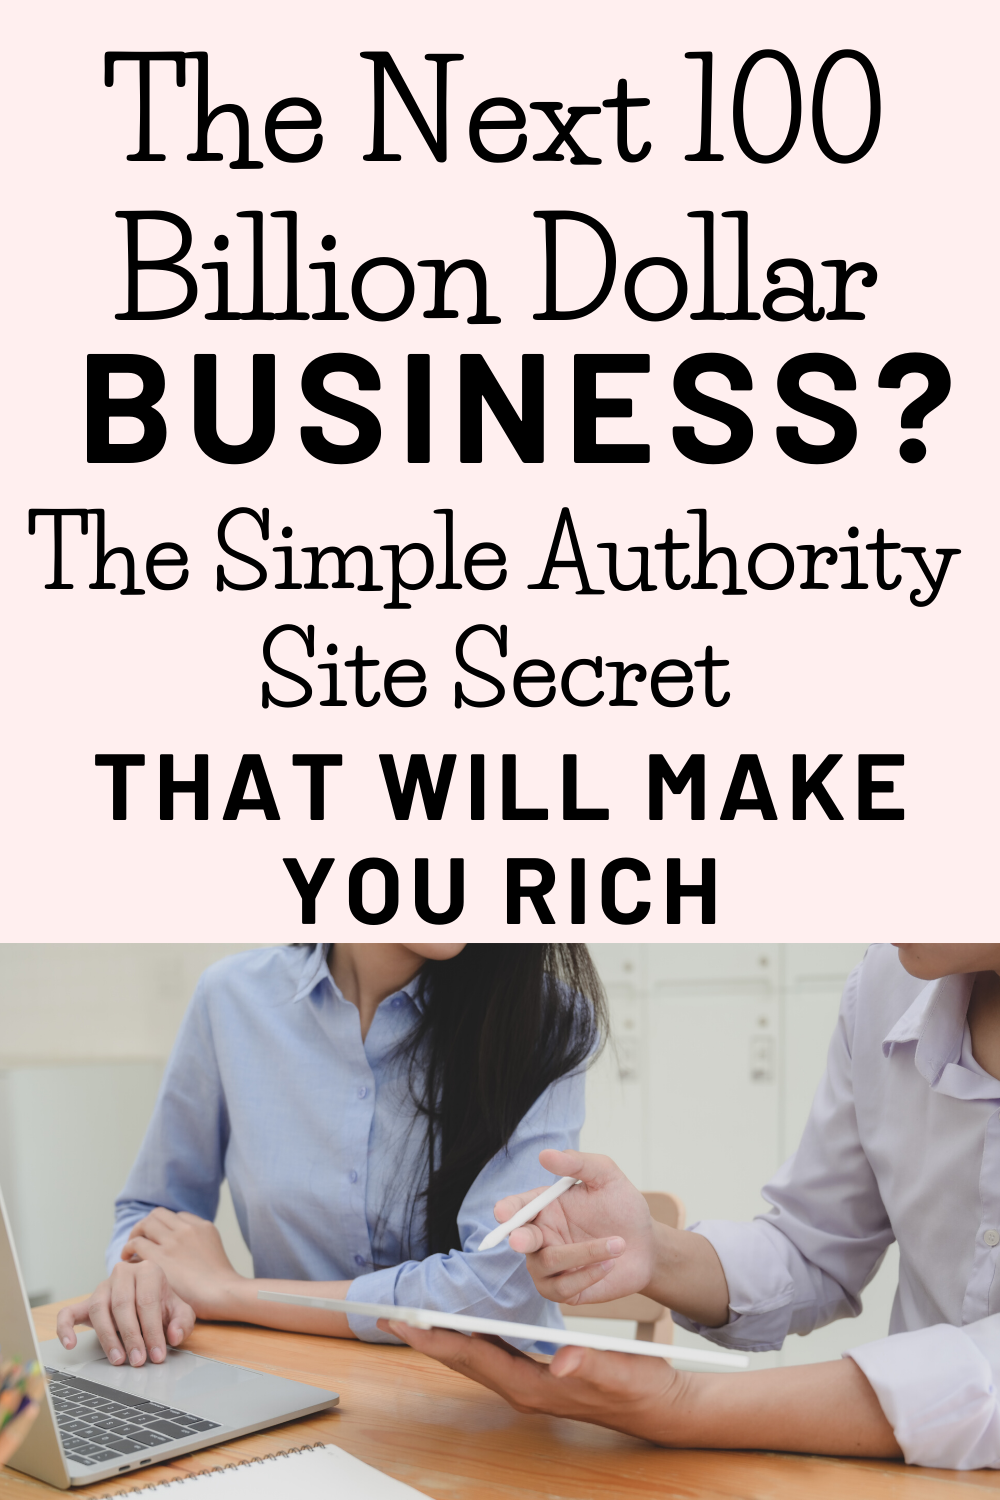 The Next 100 Billion Dollar Business? The Simple Authority